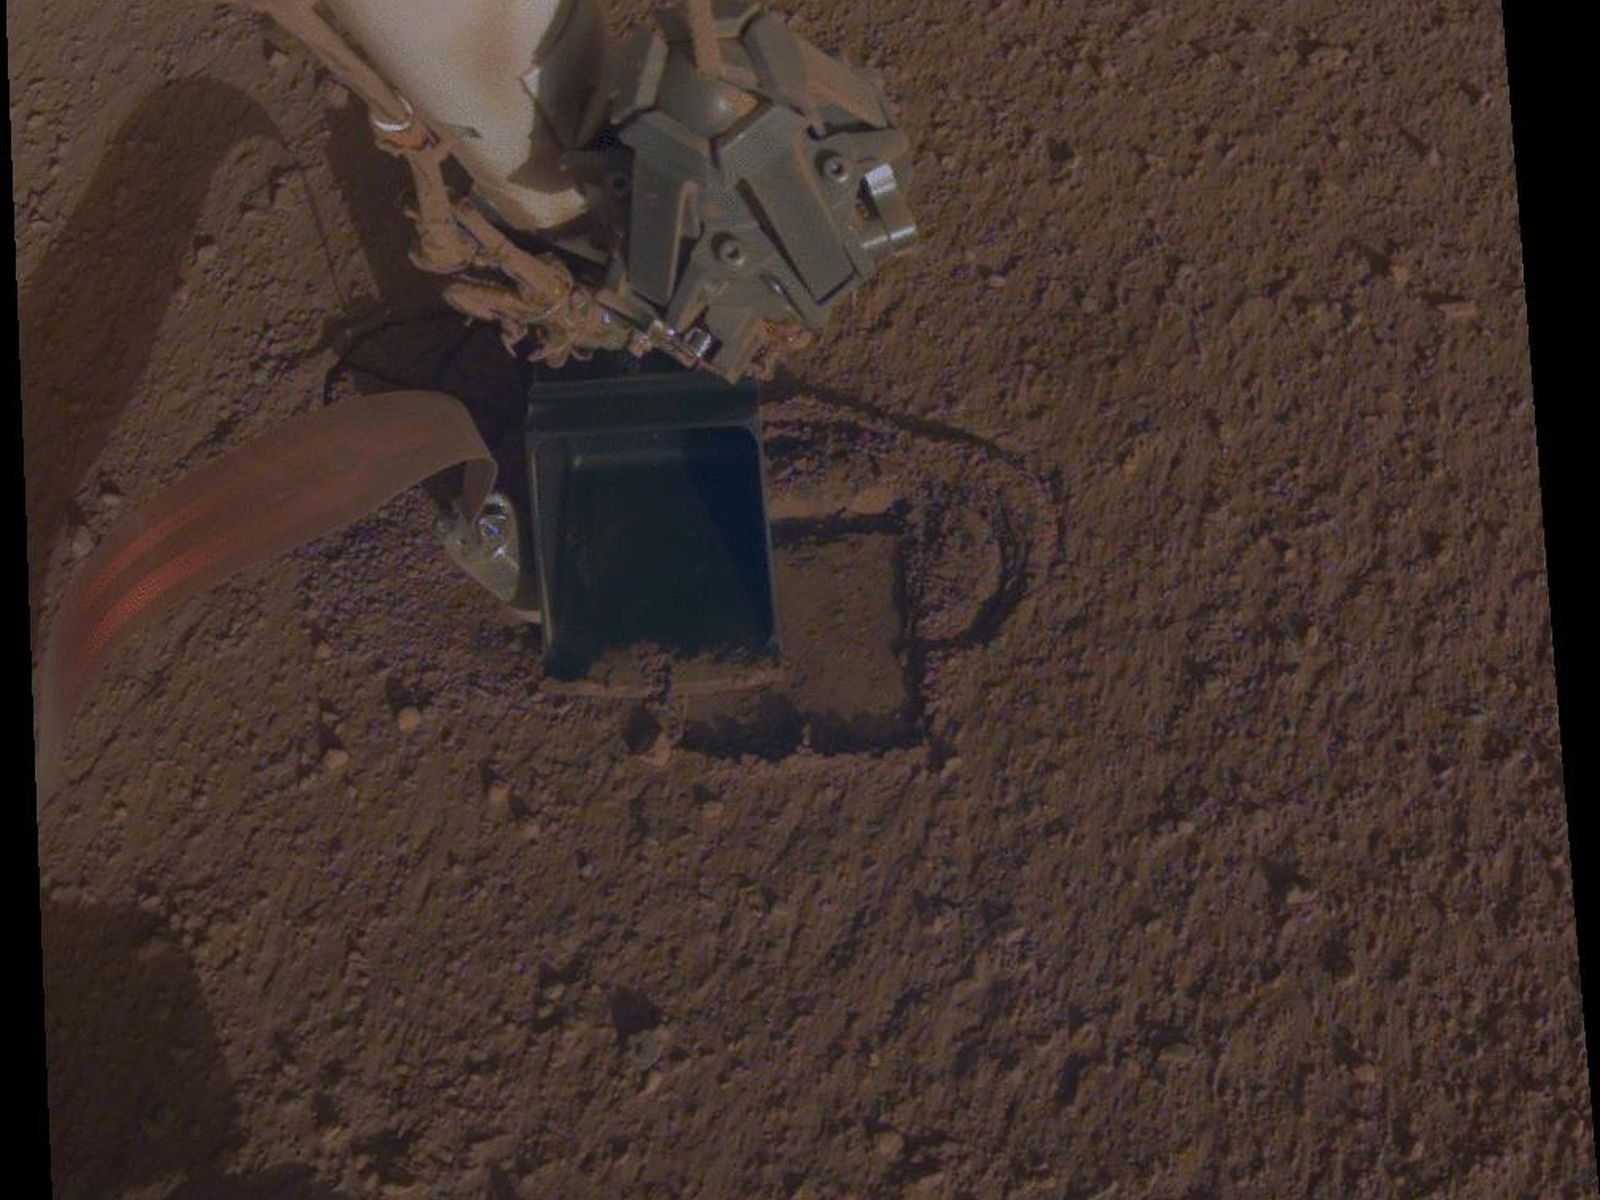 InSight mission is digging into Mars again